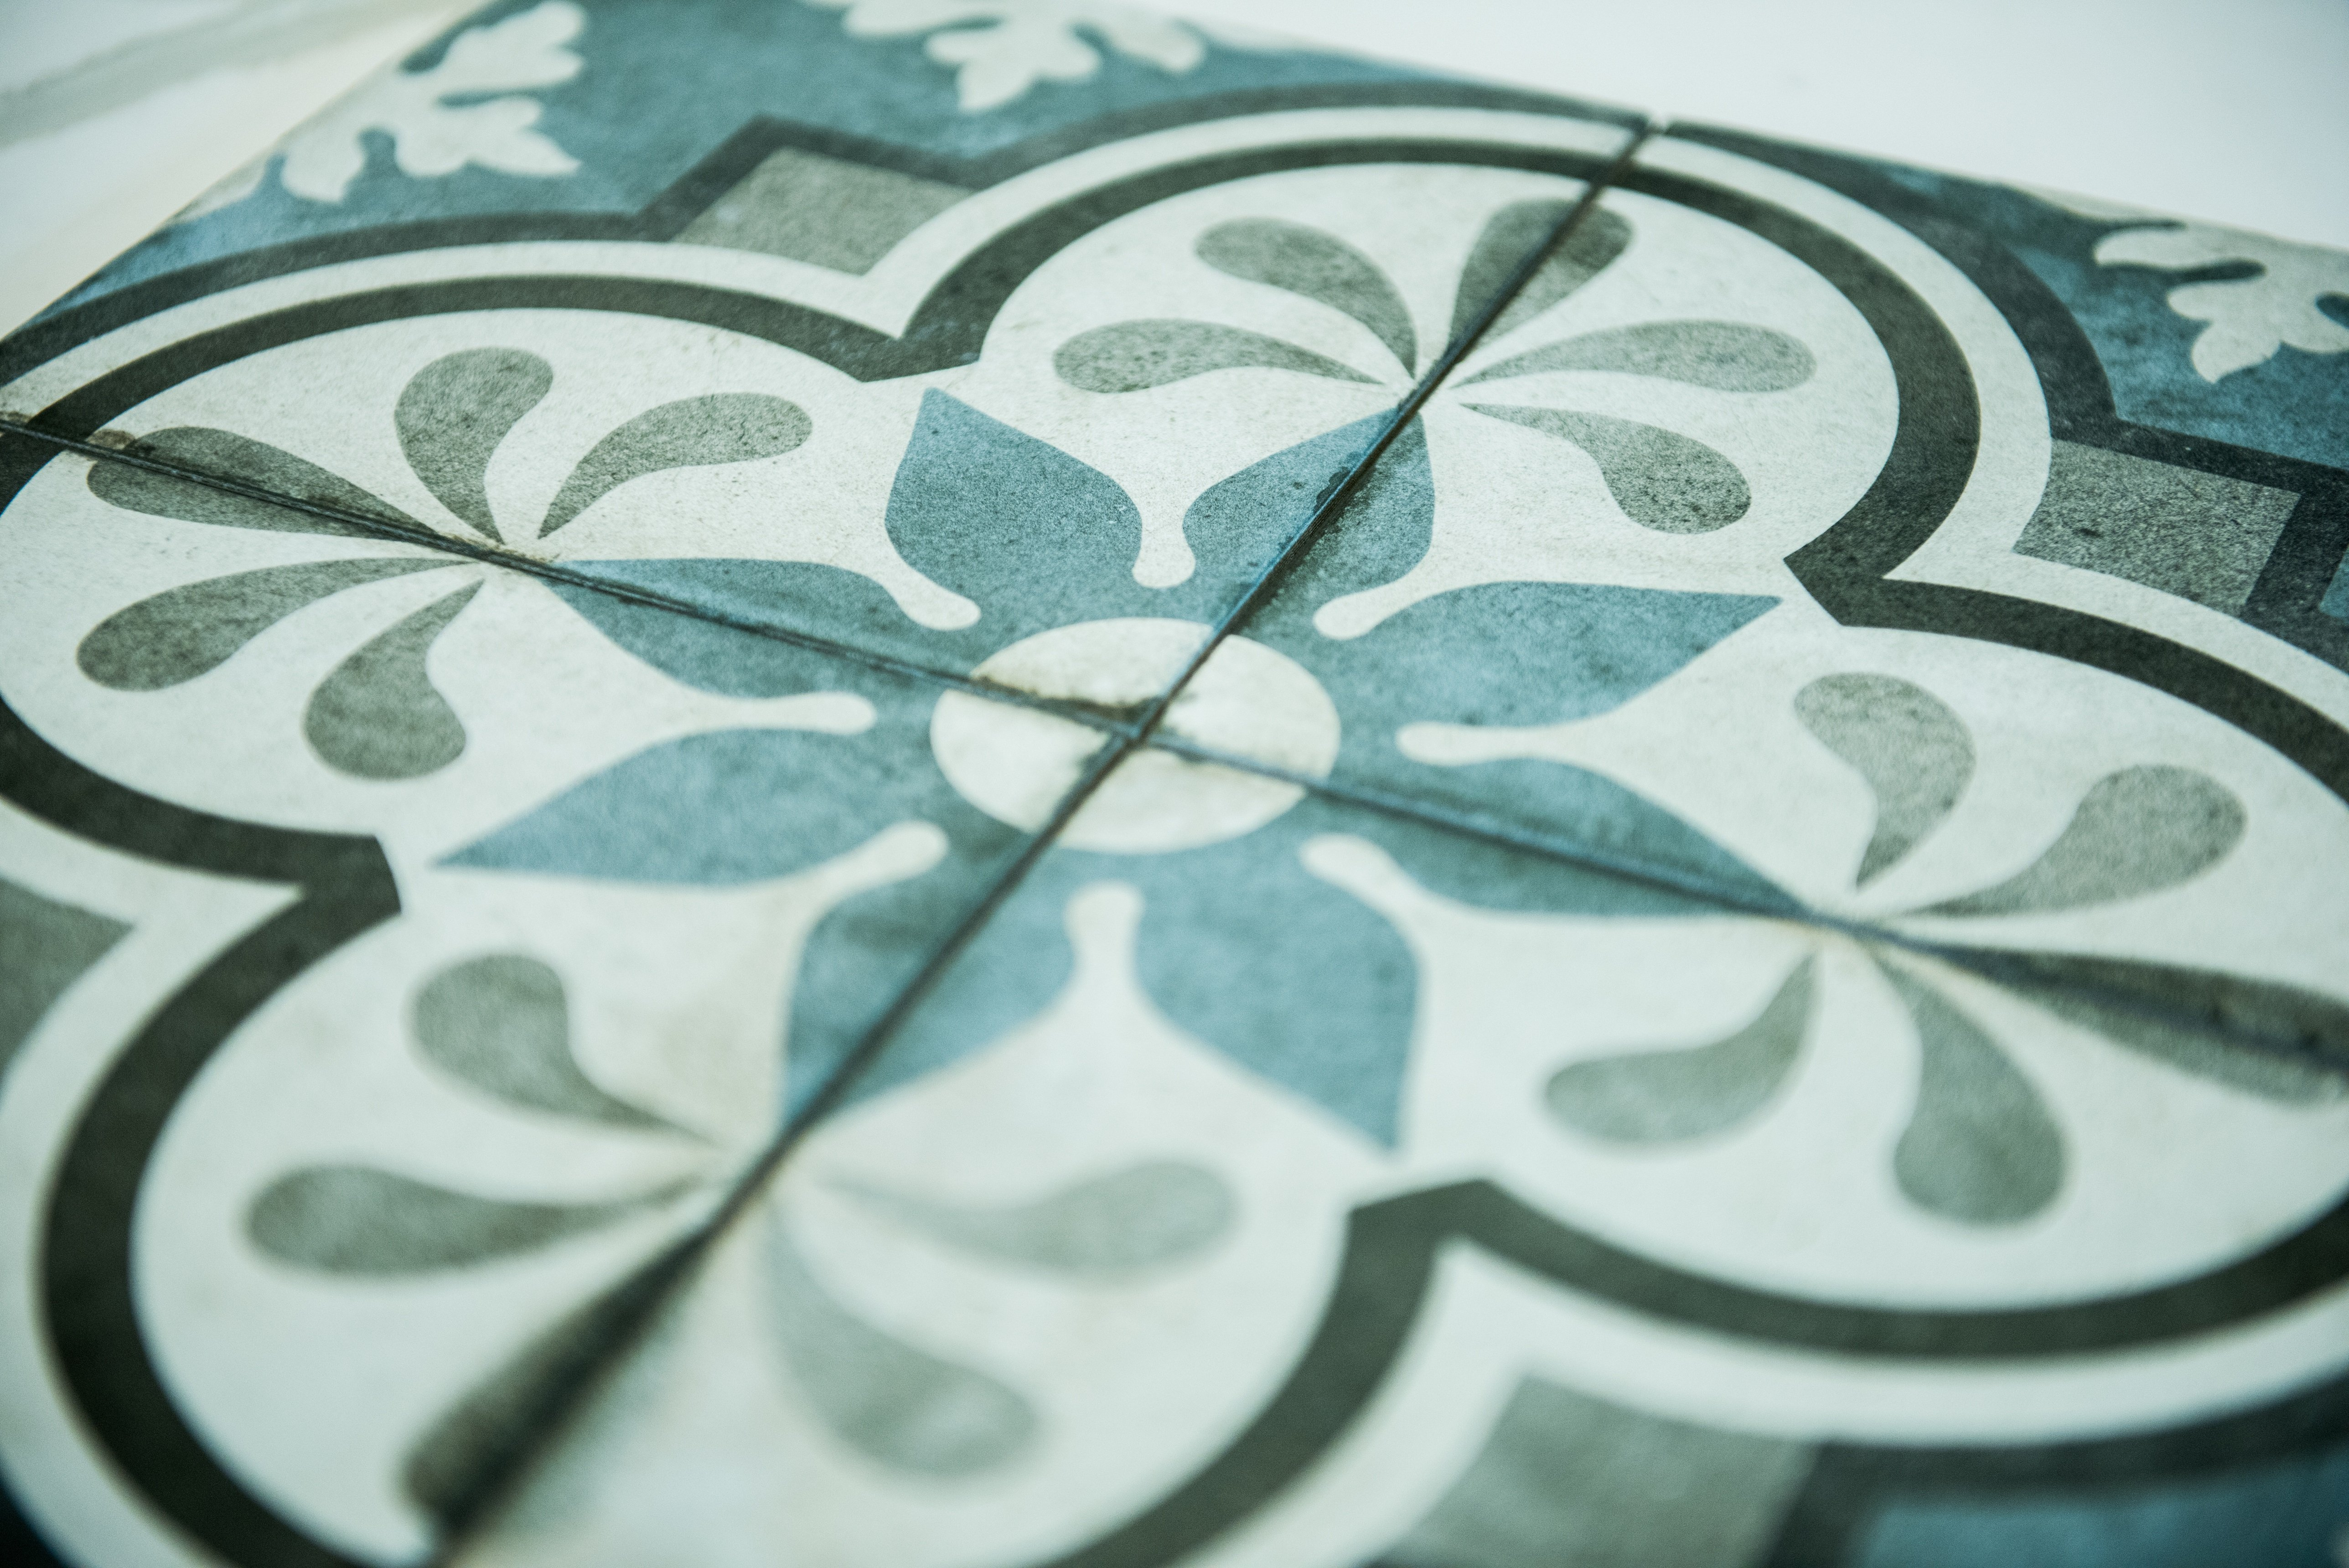 DALTILE Tile Trends For Spring Haven Home - Daltile indianapolis indiana